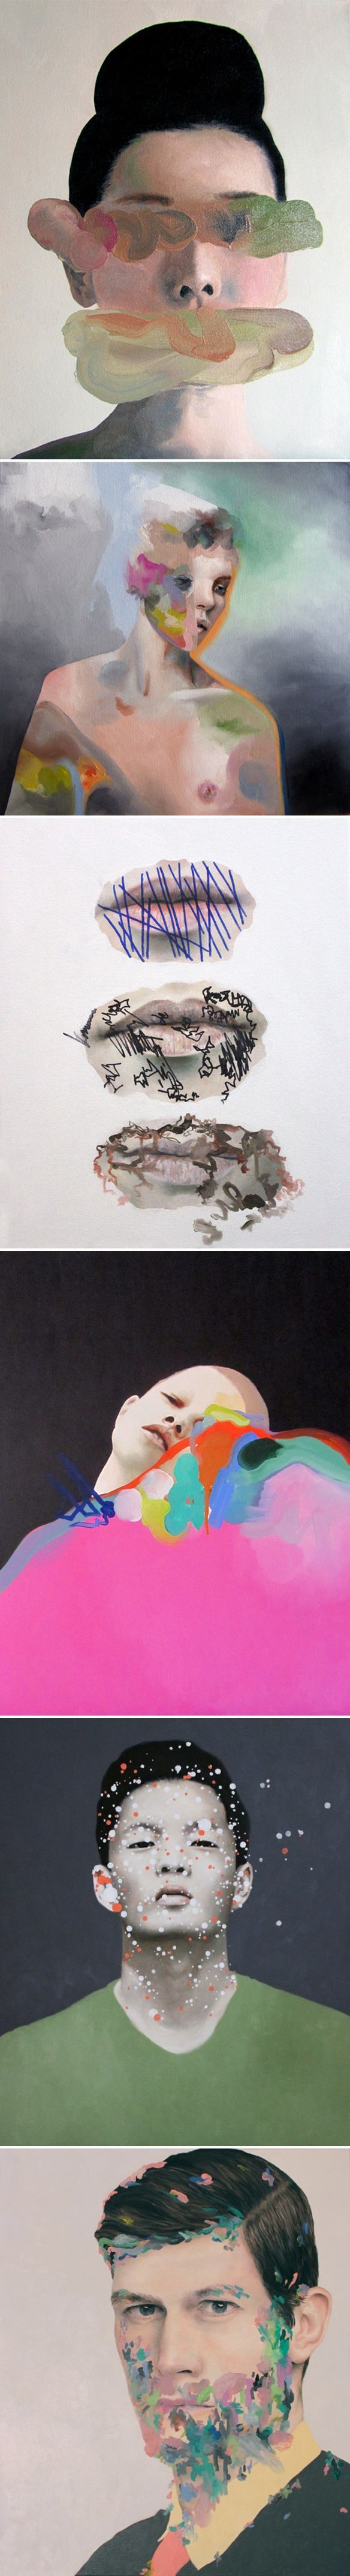 Andrea Castro imperfections forms colours shades pattern bright liquid human